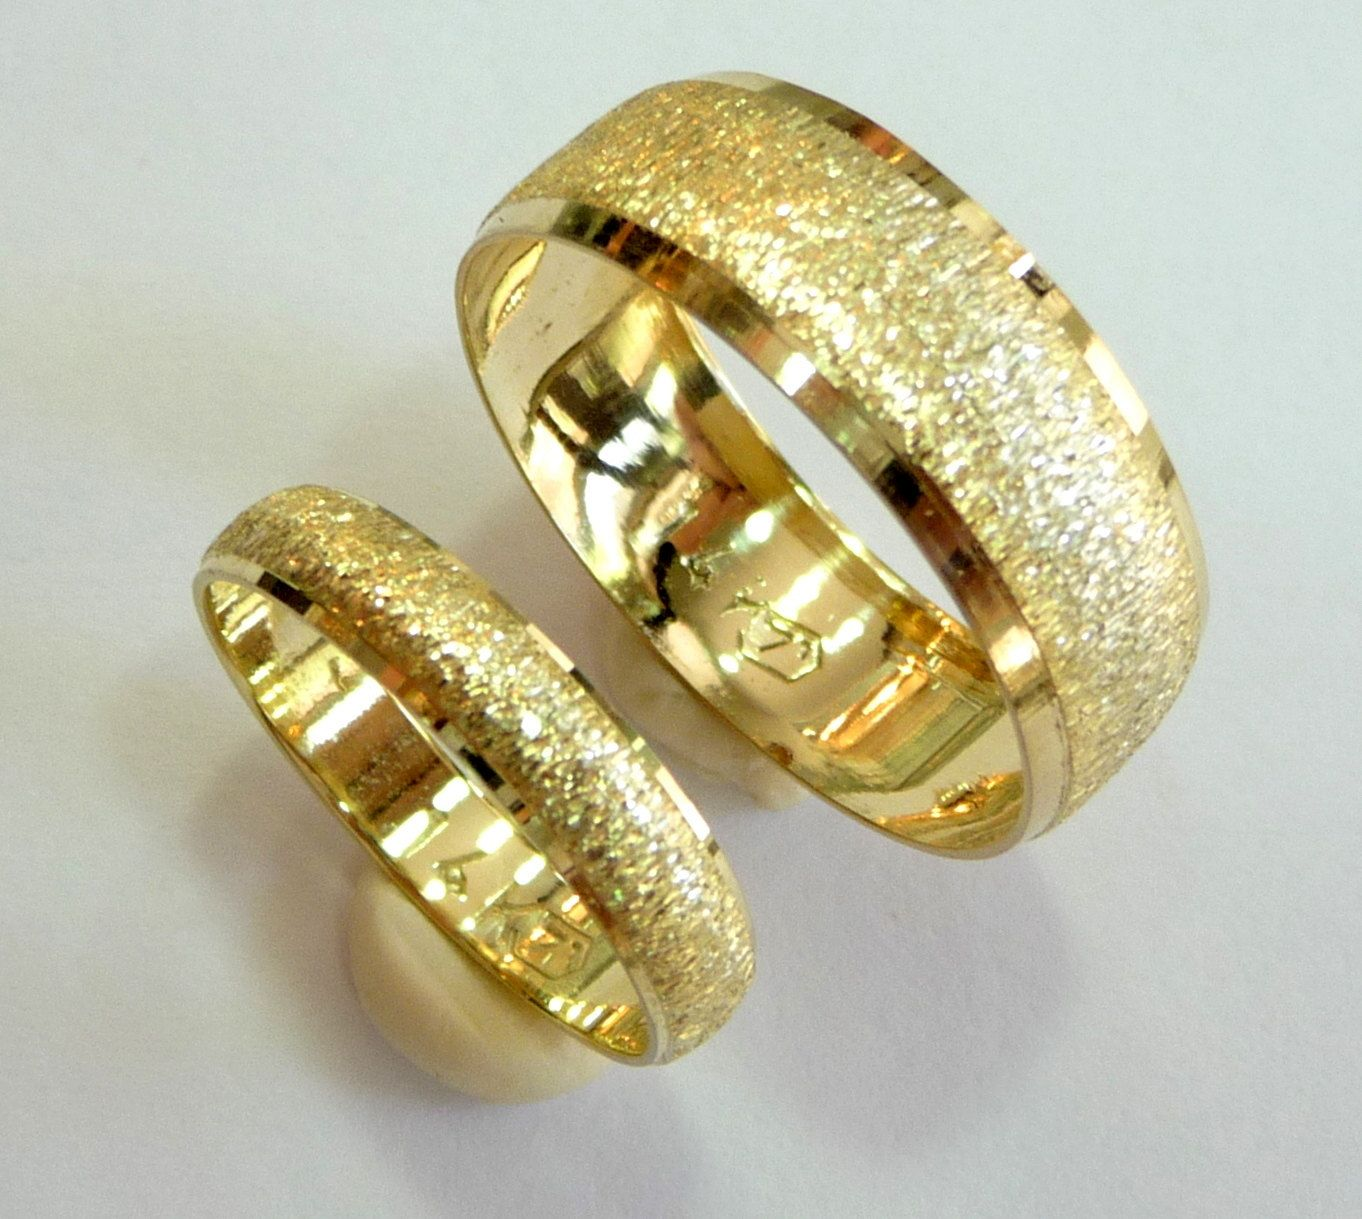 16 Wedding Bands Set Gold Wedding Rings For Men And Women 14k Gold. Http: